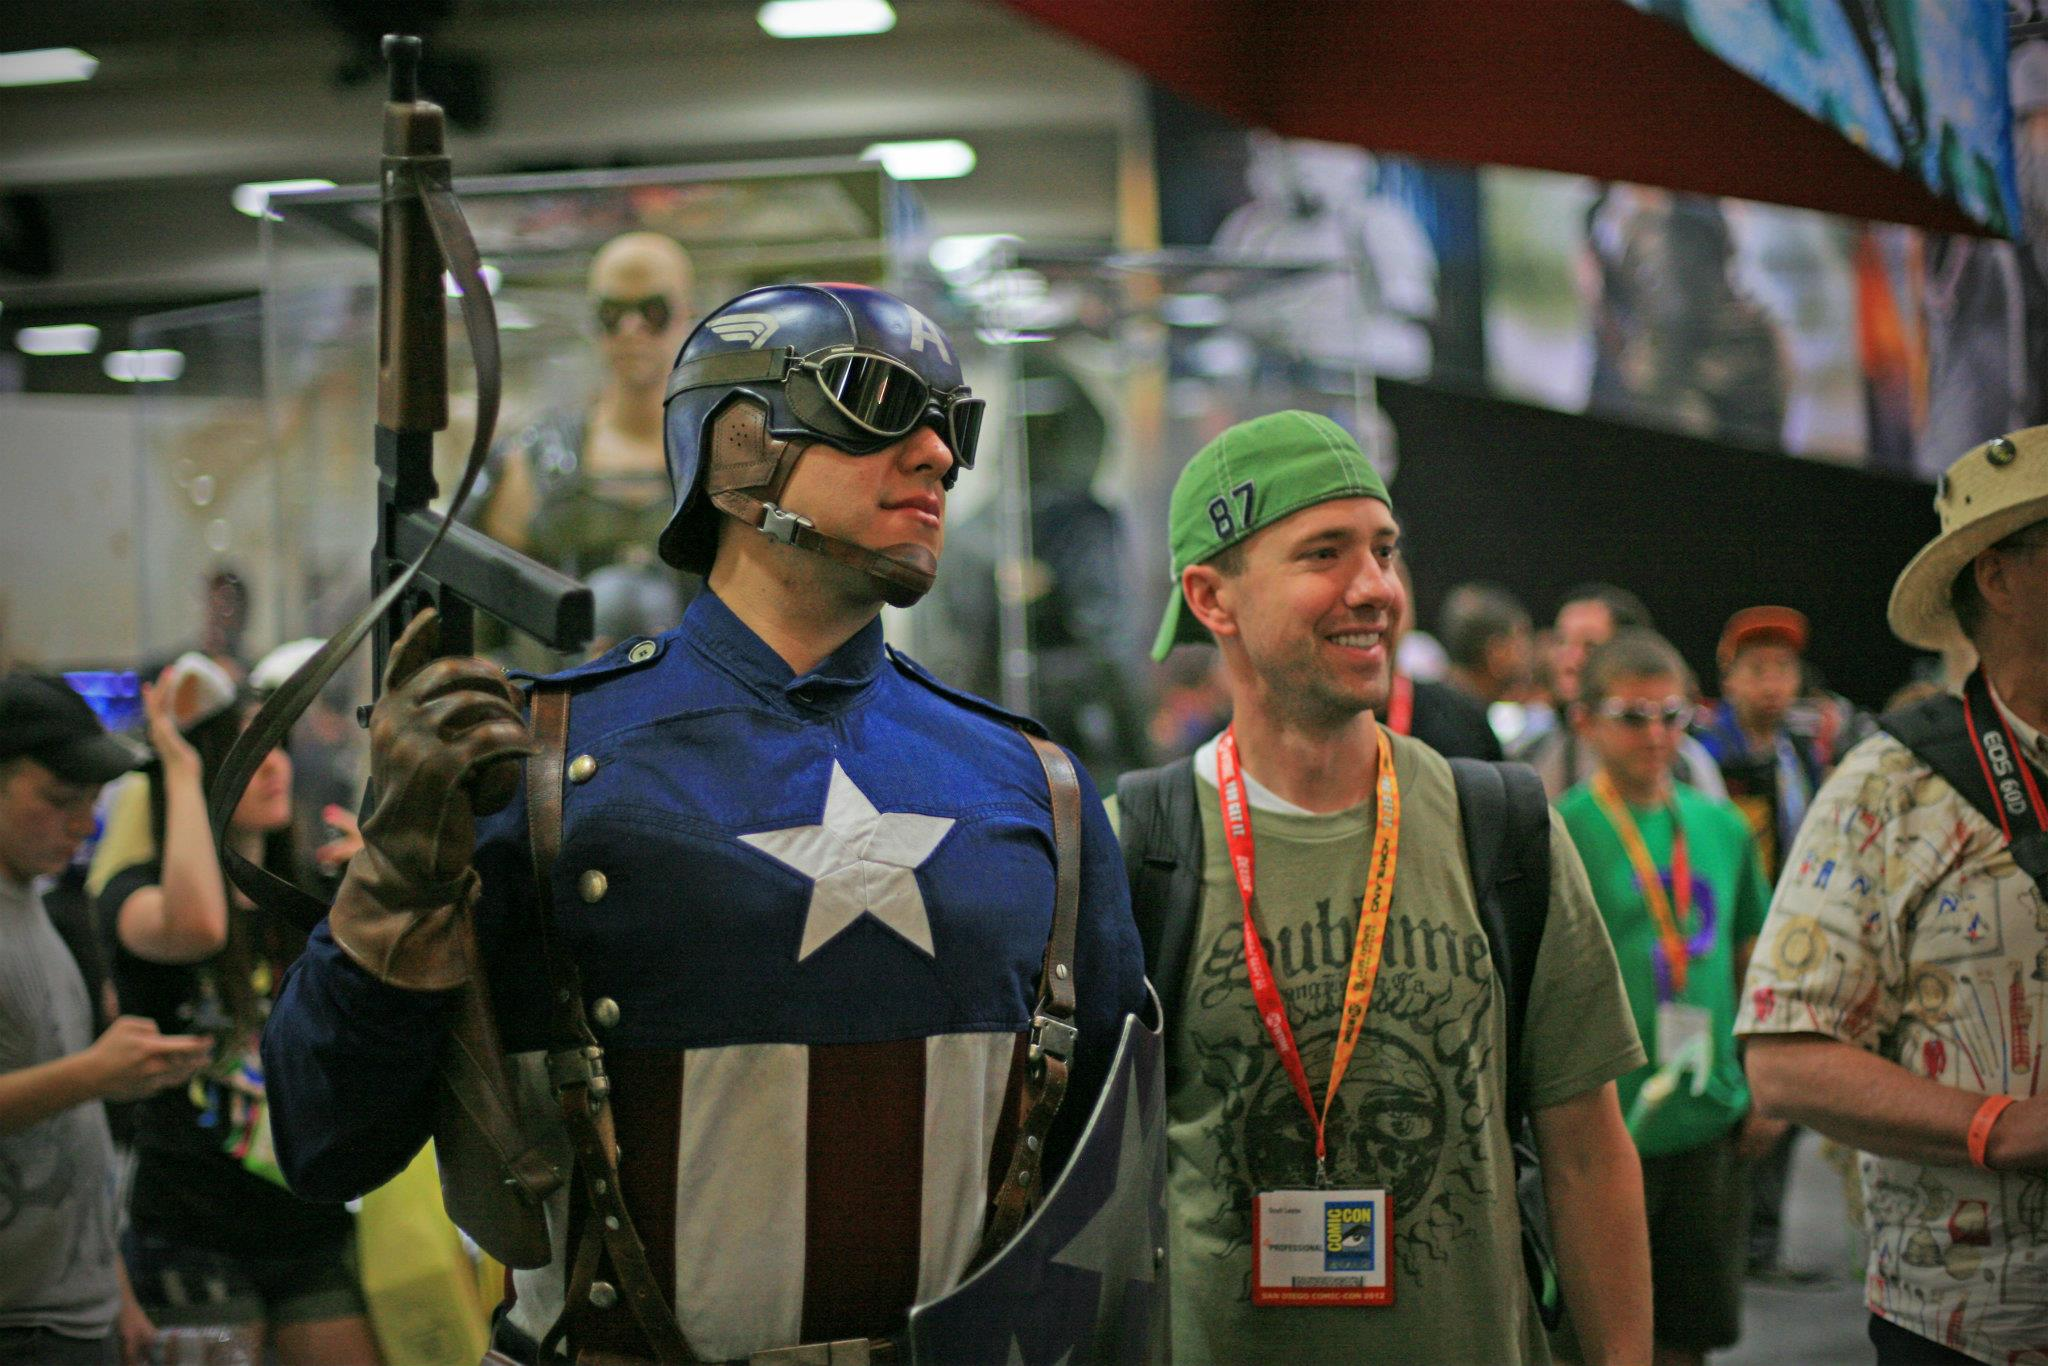 Captain American at Comic-Con International - Top Things to Do in San Diego